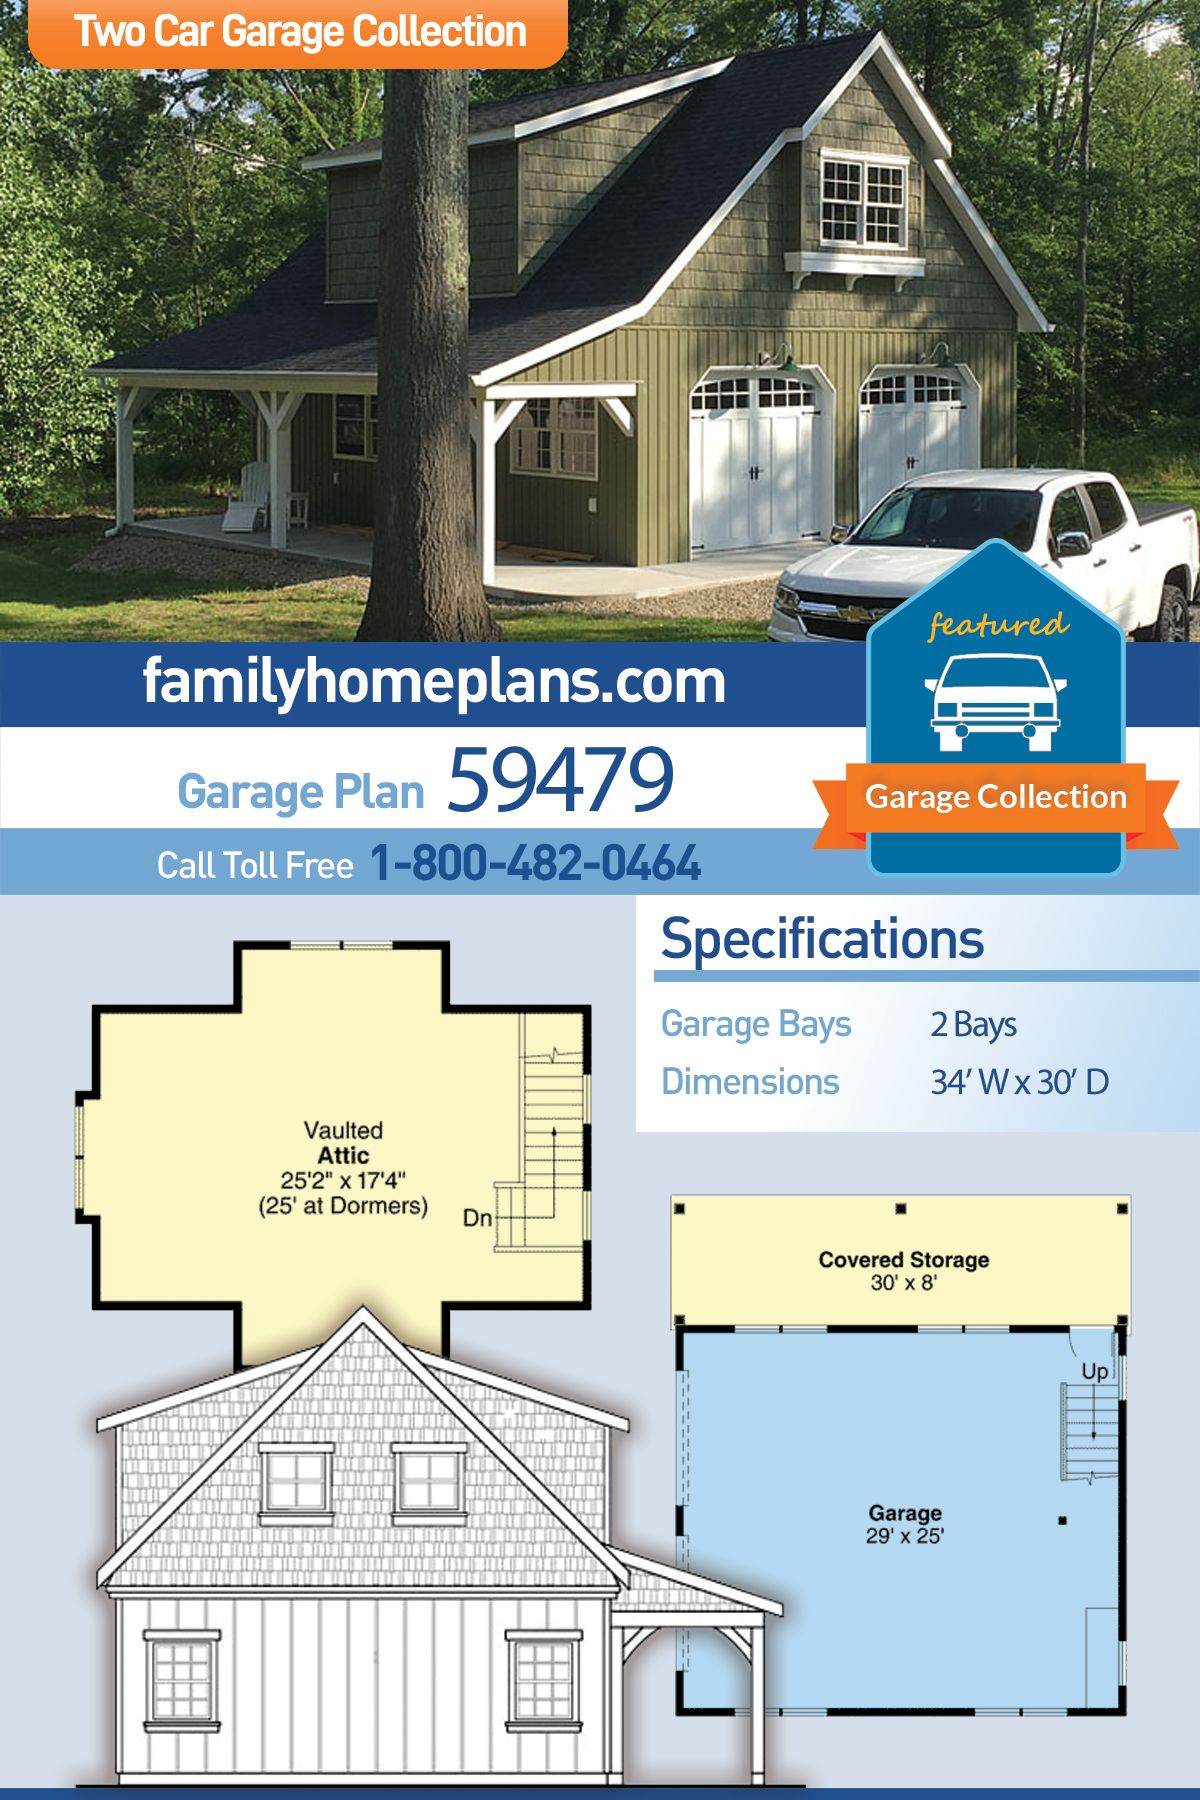 Farmhouse Style 2 Car Garage Plan Number 59479 Garage Plan 2 Car Garage Plans Garage Building Plans